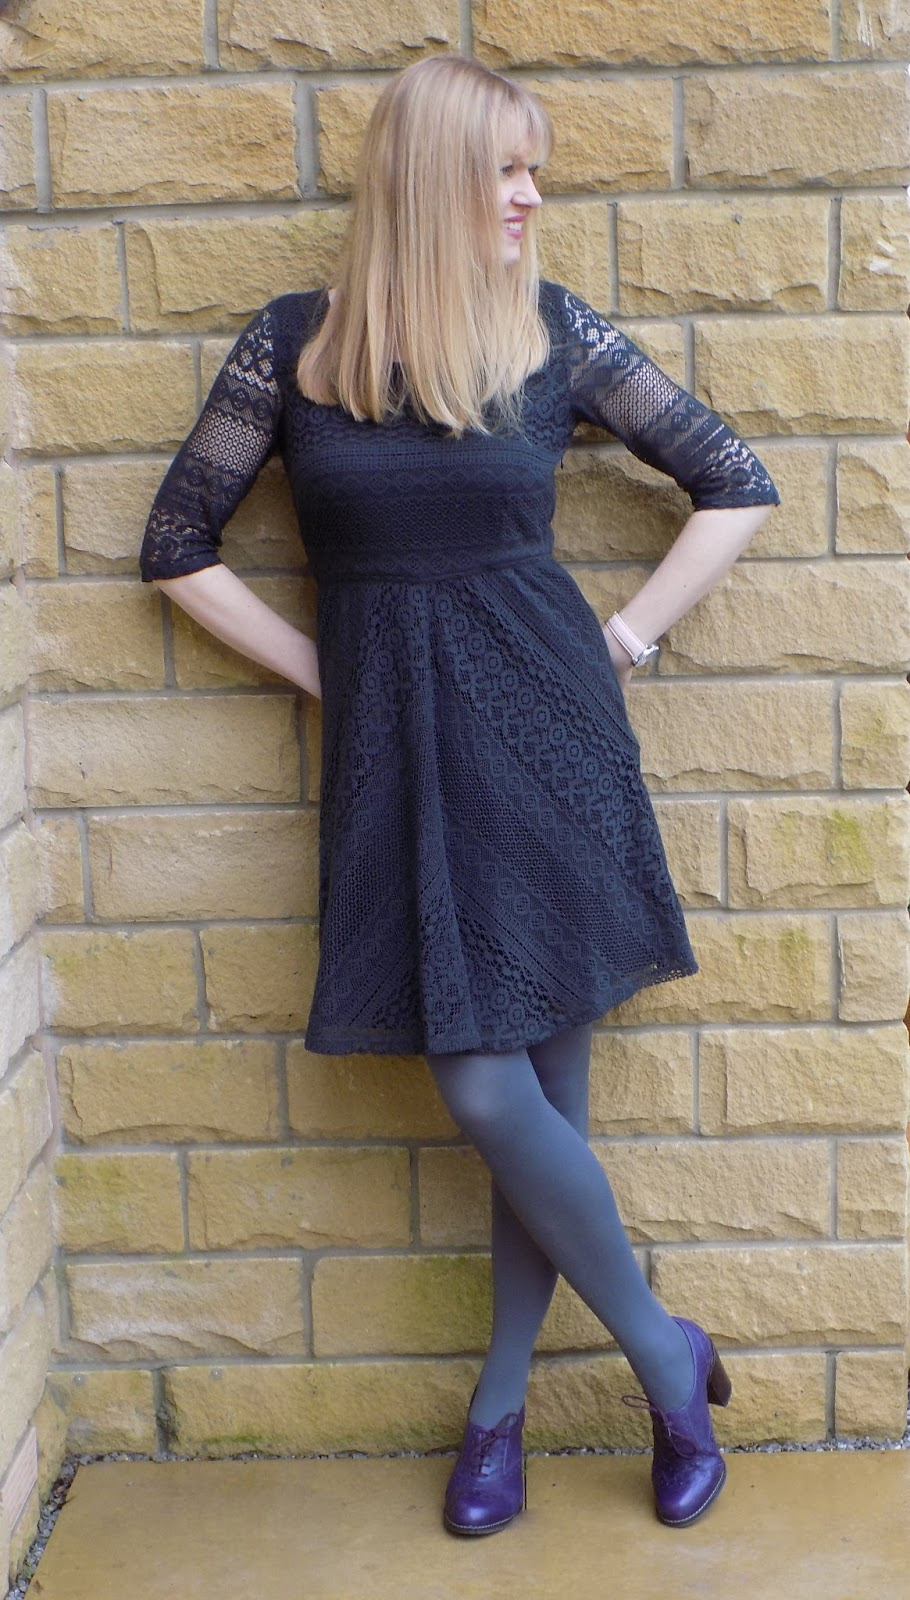 Grey lace dress with purple brogues